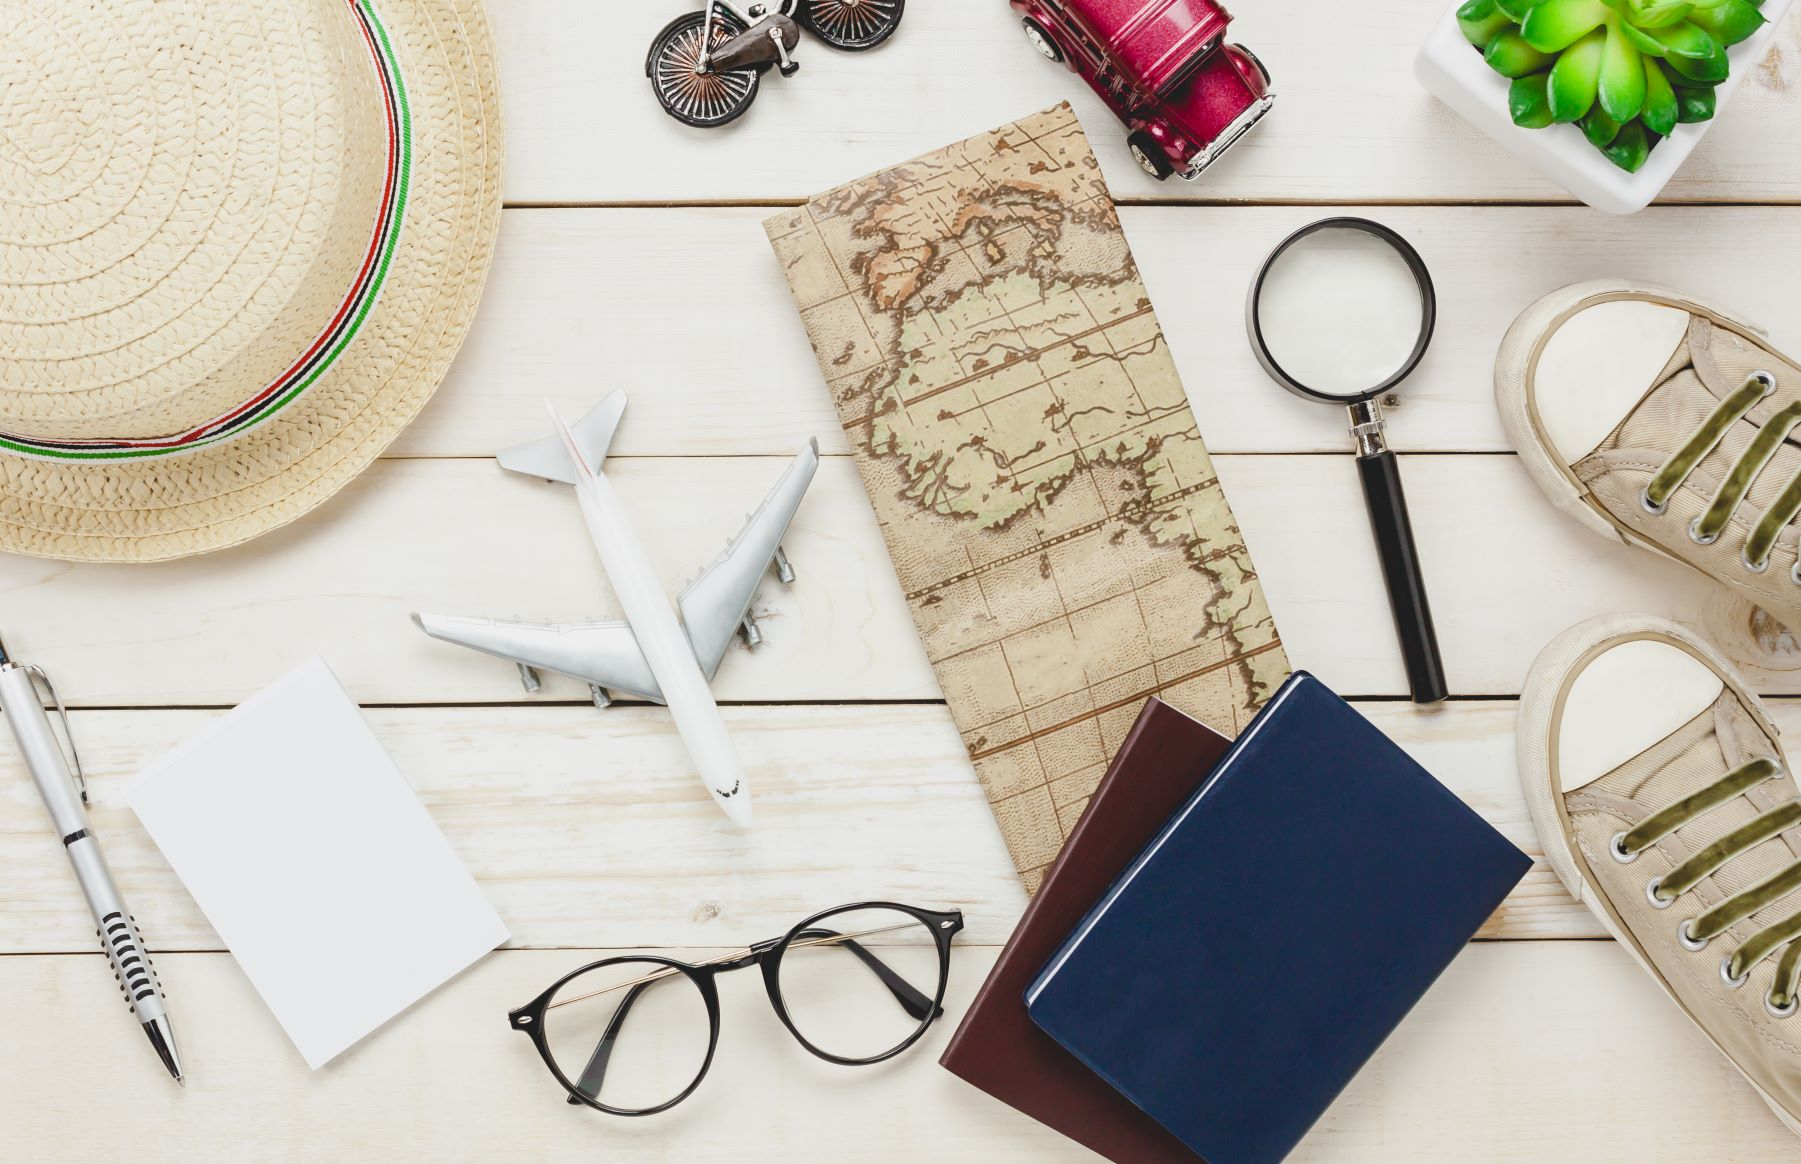 top-view-essential-travel-items-shoes-notebook-tree-map-pass